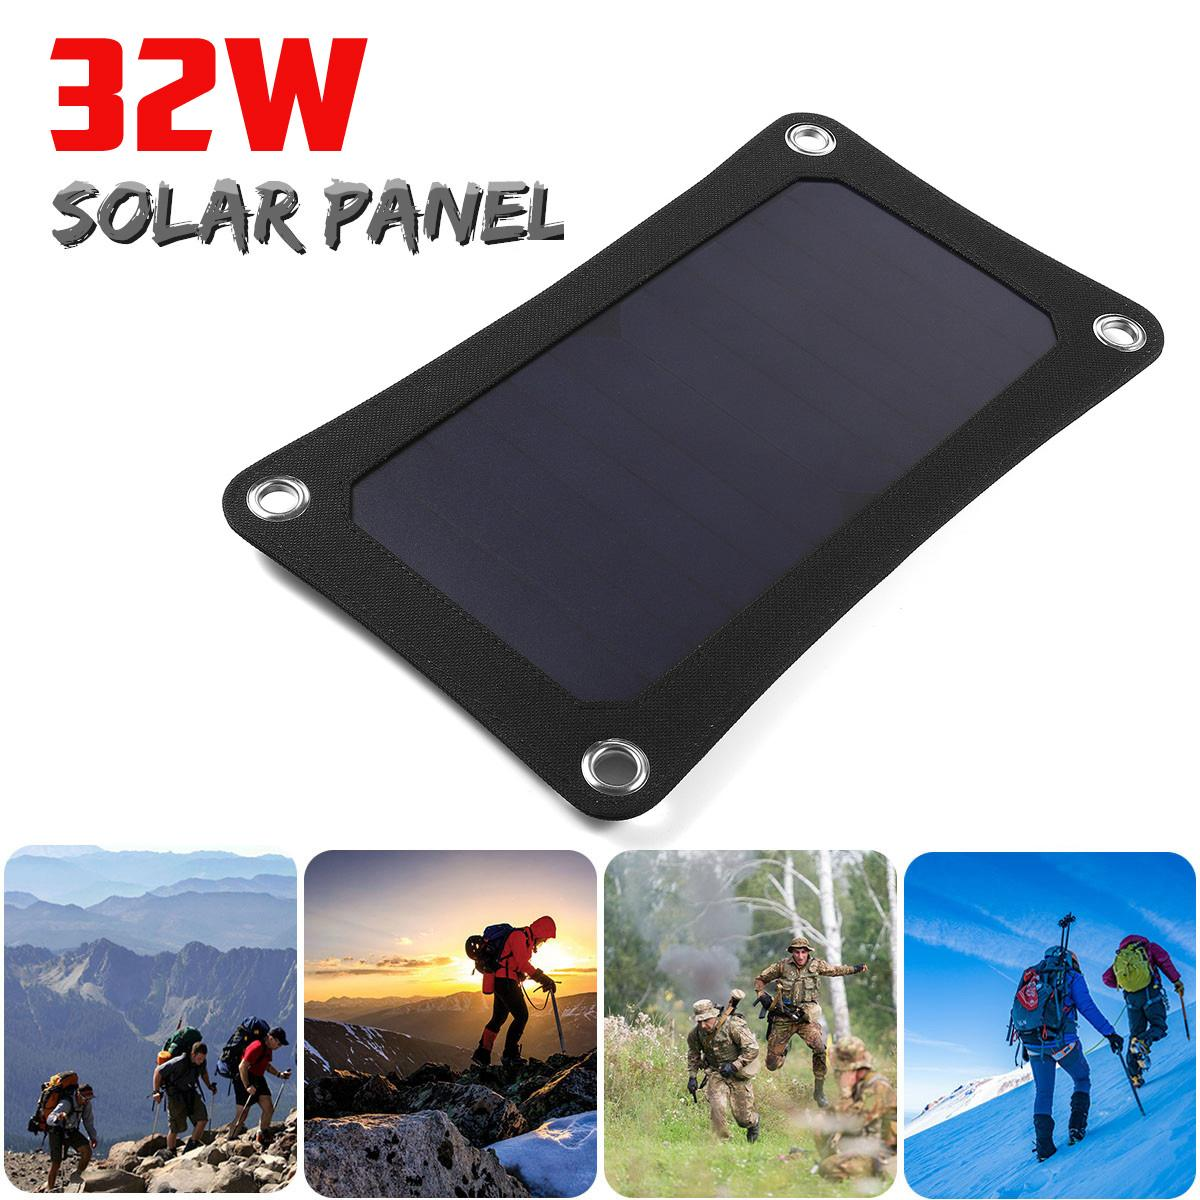 Solar Panel Charger 32W 5V Portable Solar Power Bank Backpack Camping Hiking Solar Panel Kit for phone with USB Port 32CM*18CM